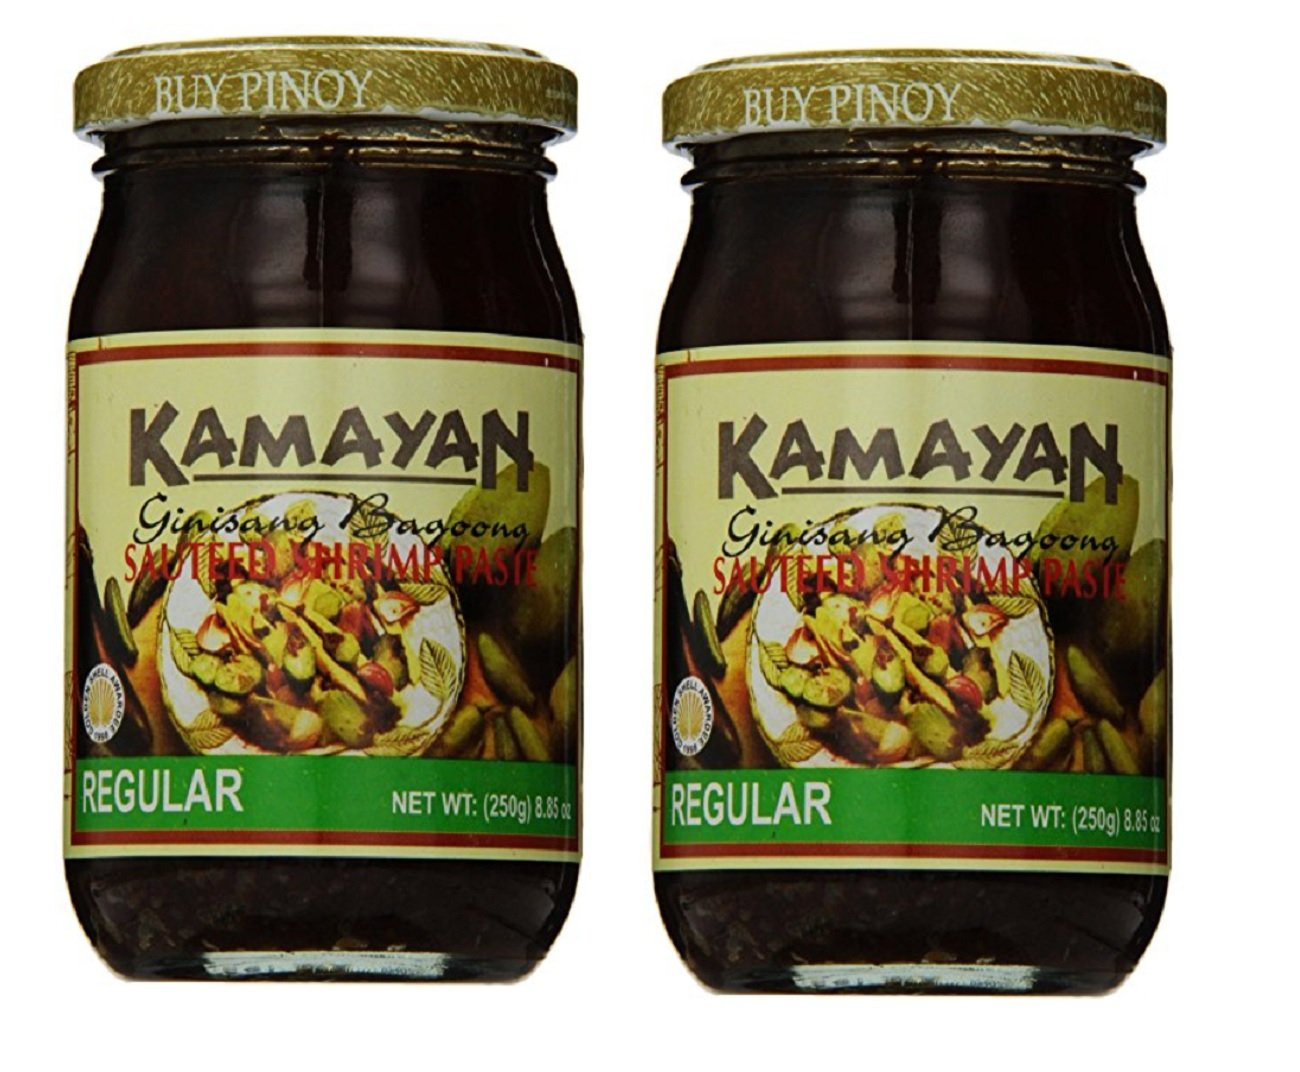 Kamayan Sauteed Shrimp Paste, Regular, 8.8 Ounce, 2 counts by World Food Mission (Image #1)